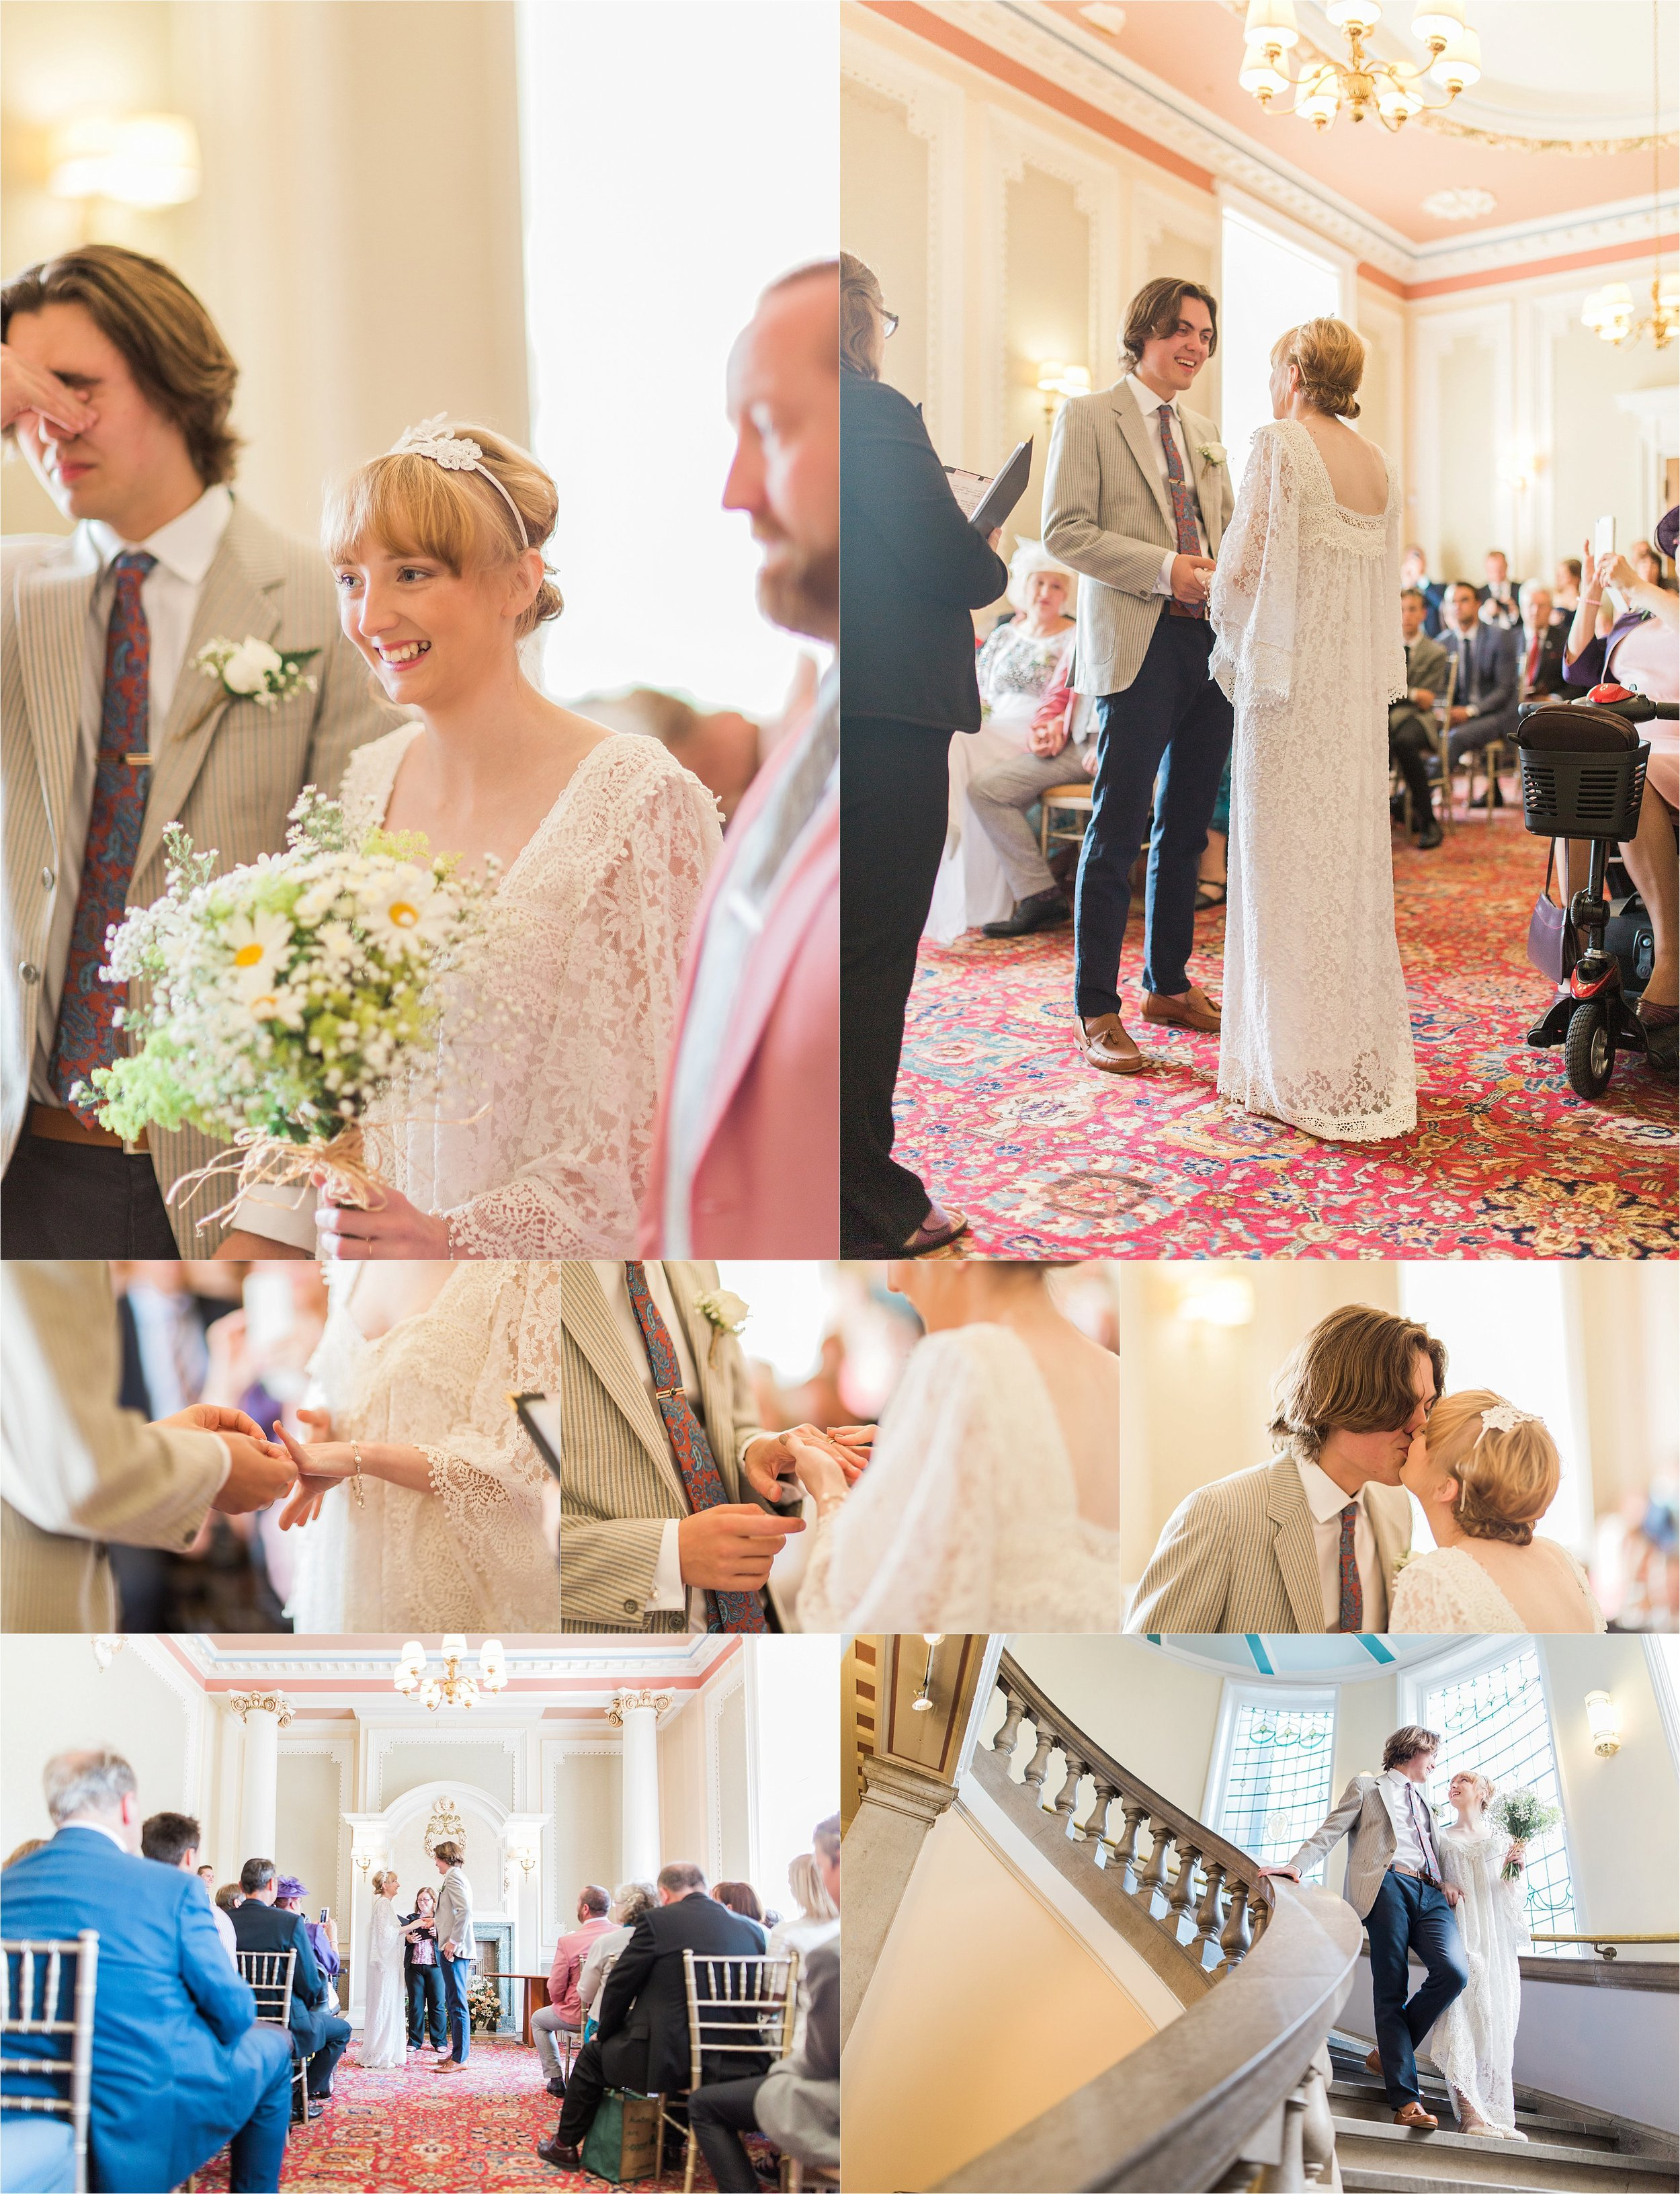 The ceremony was incredibly romantic, going off without a hitch, the guests were full of love and happiness.